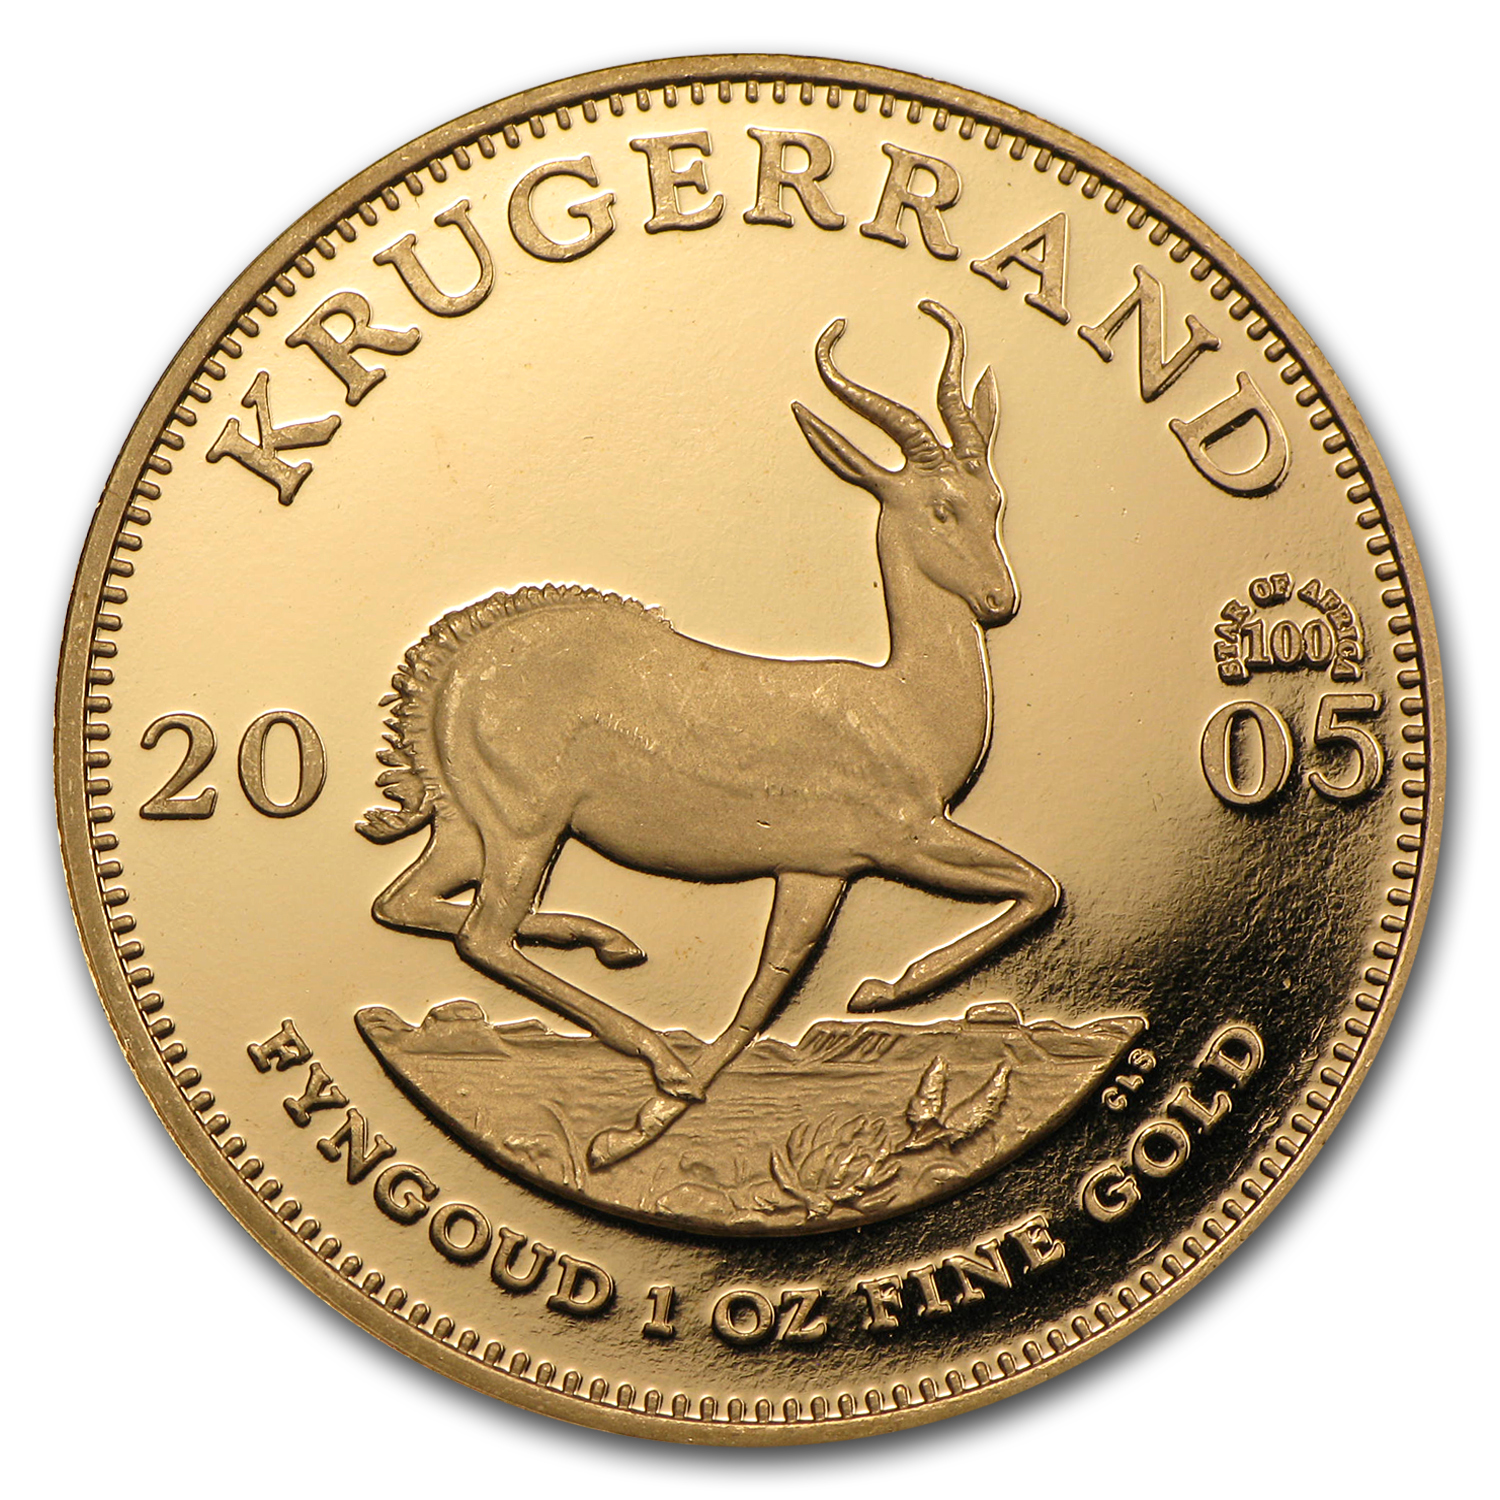 2005 1 oz Gold South African Krugerrand (Proof) (Star of Africa)